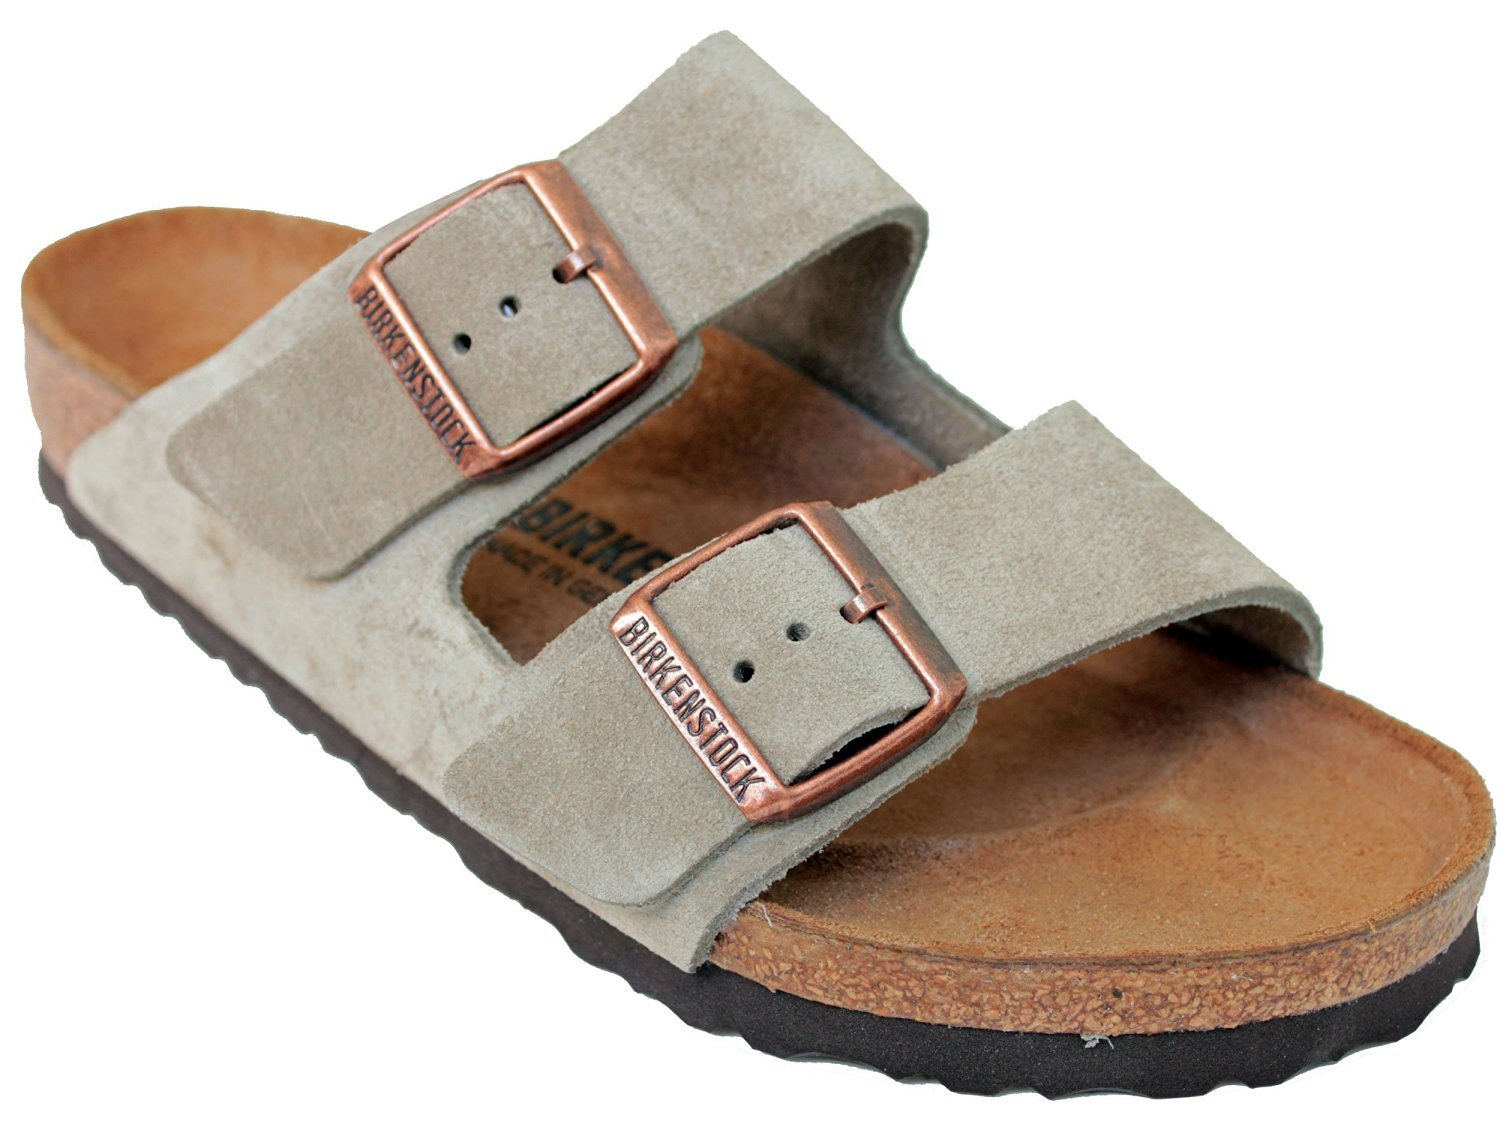 Birkenstock Arizona 2-Strap Suede Leather Sandals, Taupe (Light Sandy Beige Yellowish-Brown Color), Unisex, 38 N Narrow Width (7-7.5 US Women)